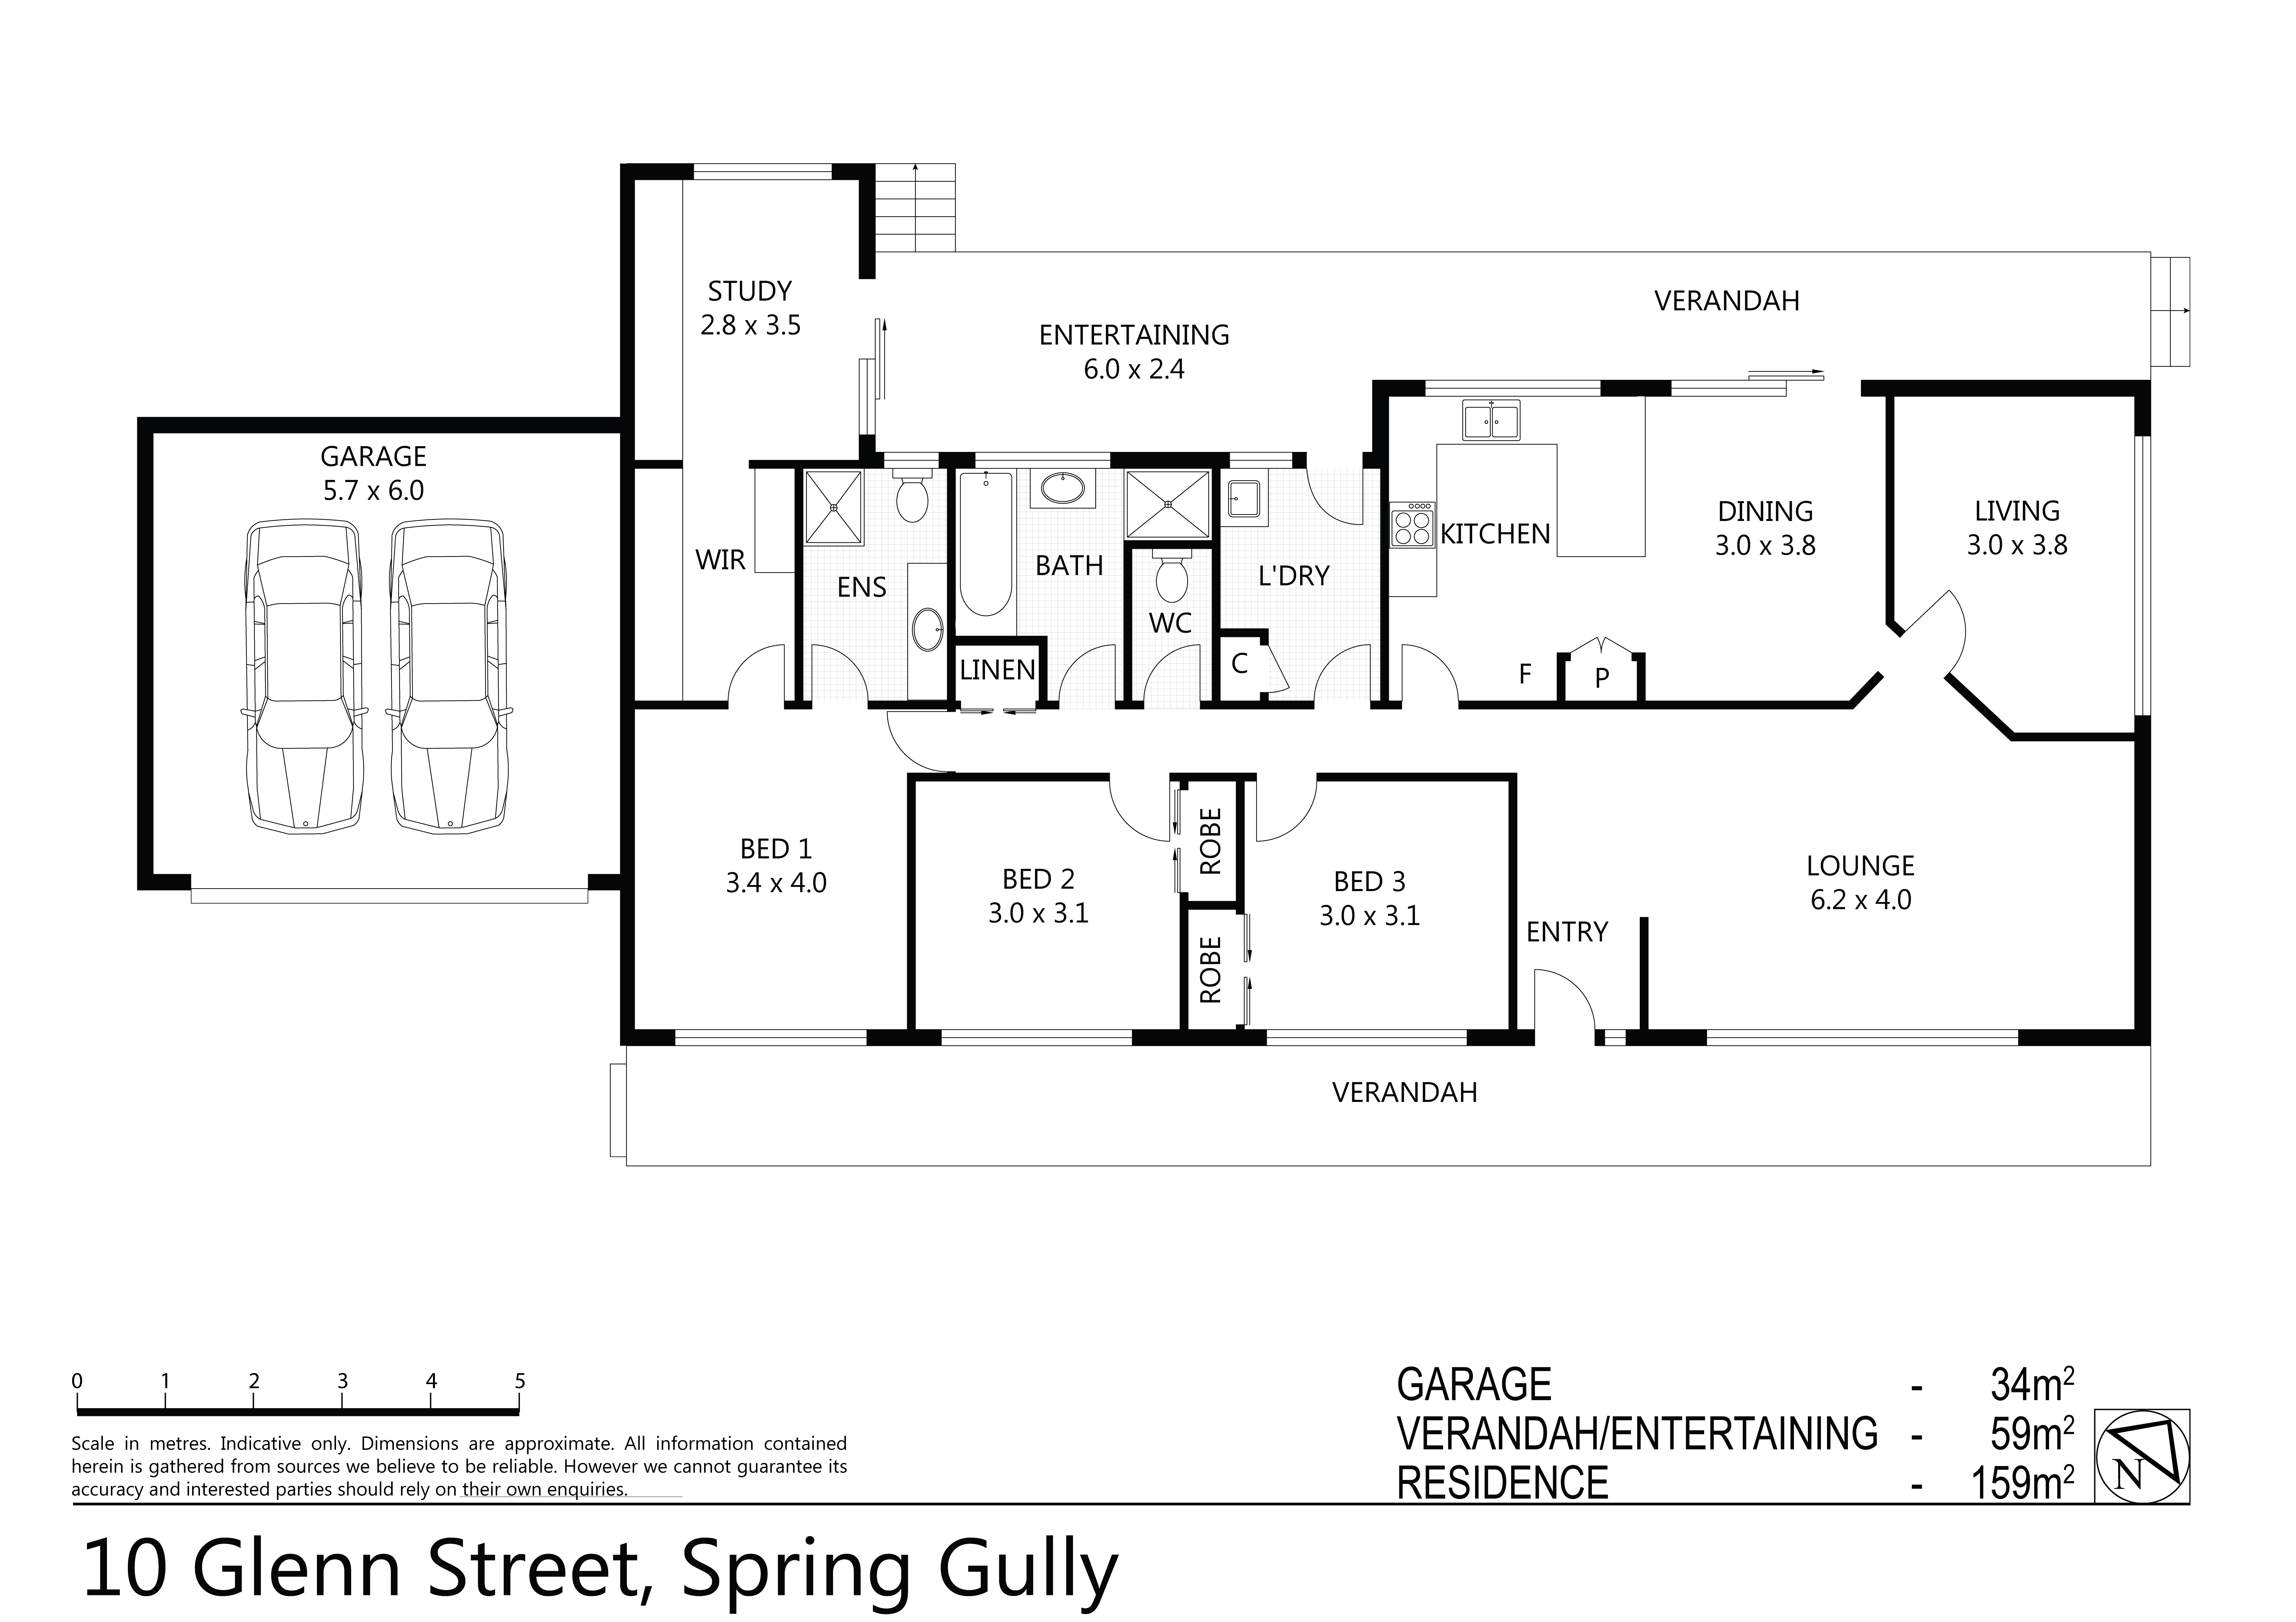 Mckean Mcgregor 10 Glenn Street Spring Gully Vic 3550 Schematic Gully20 Jun 2018 159 Sqm